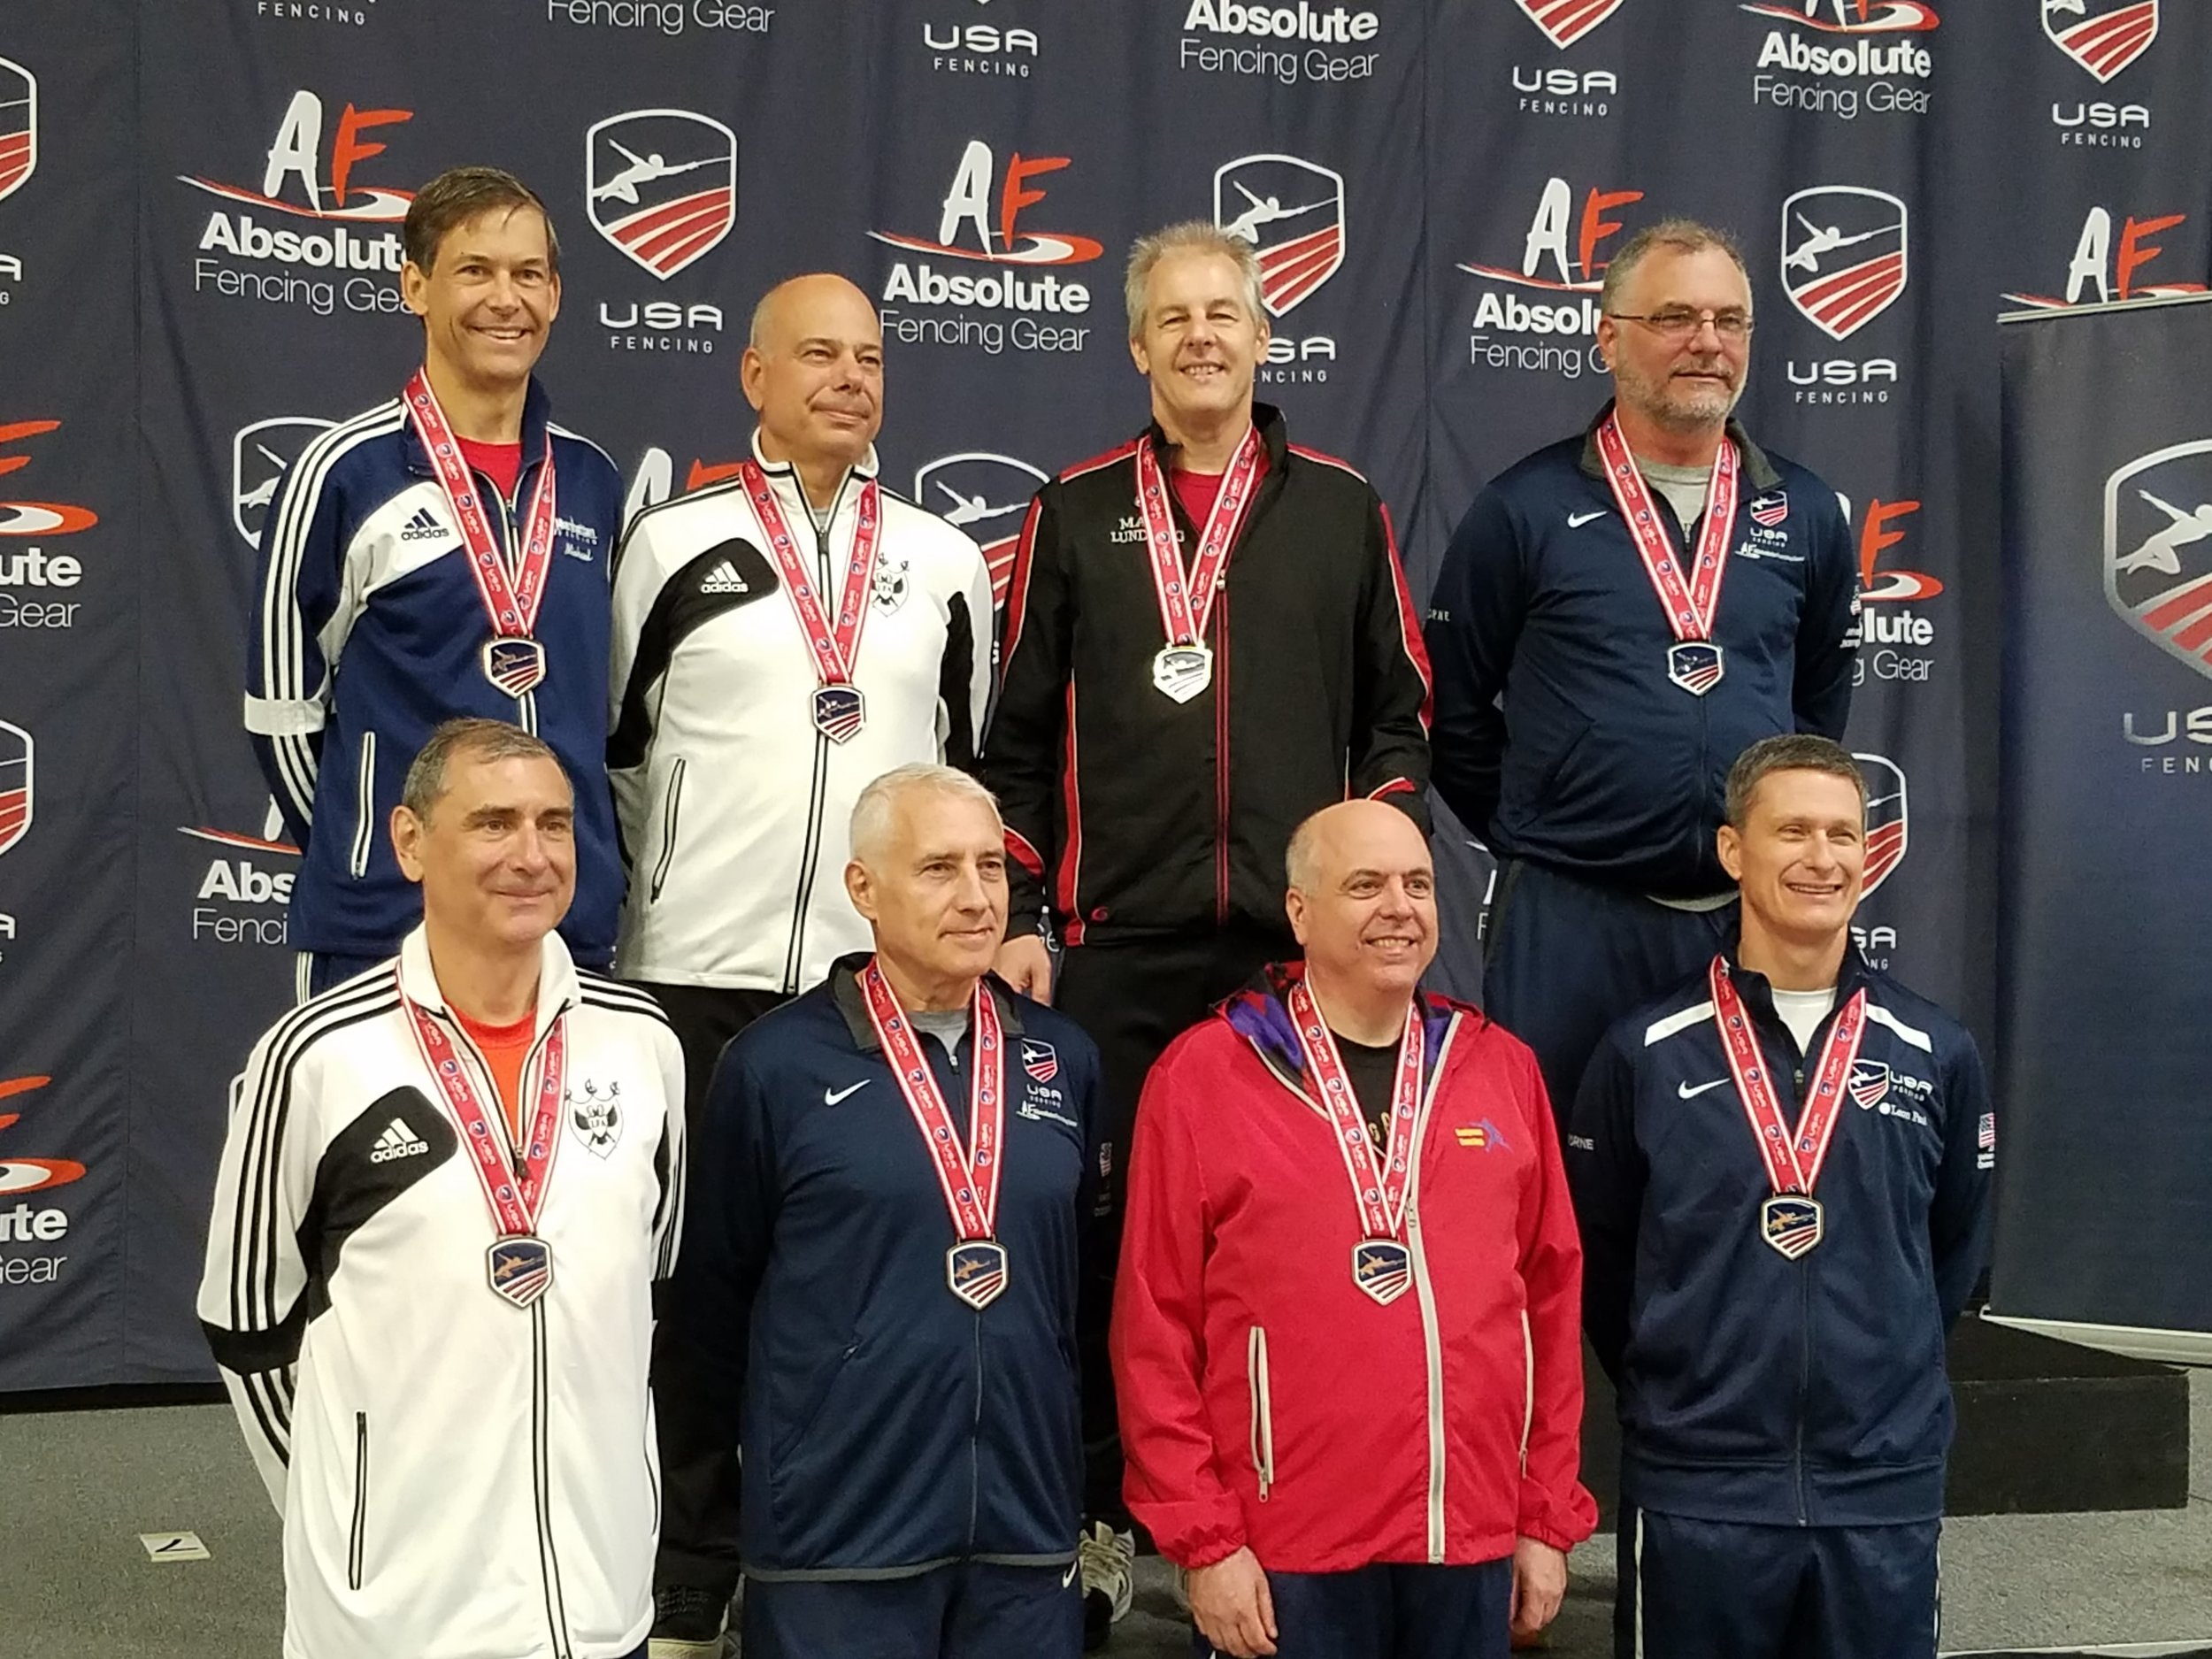 Mark (top row, second from right) receiving his GOLD medal for Veteran 50-59 Men's Saber.